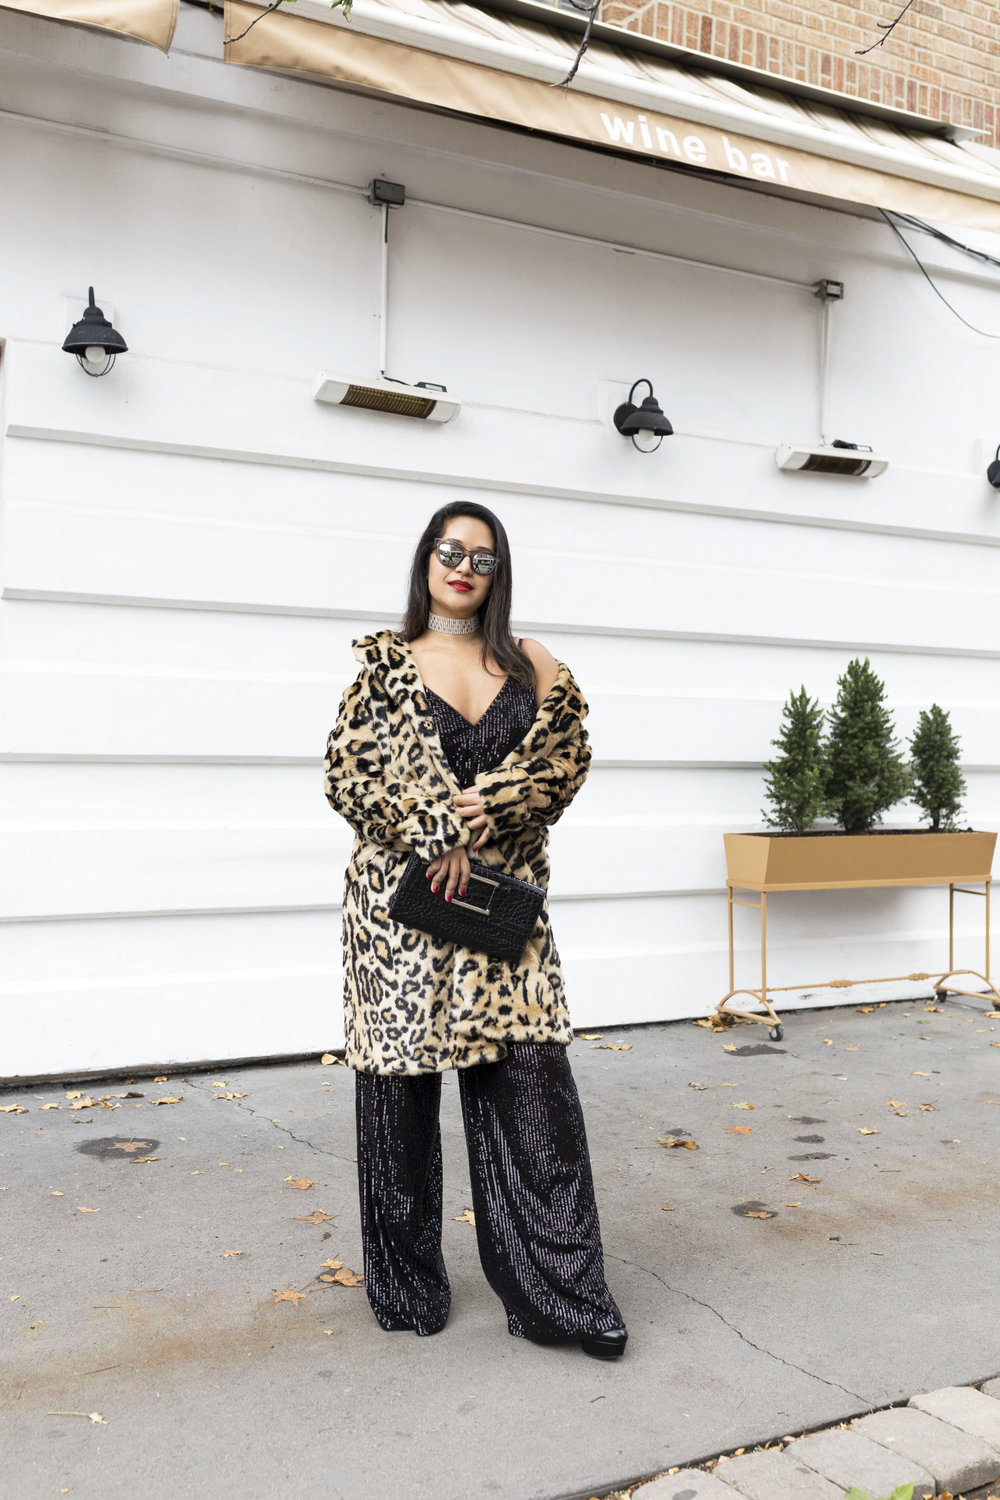 Krity S x New Years Eve Outfit x Sequin Jumpsuit and Cheetah Faux Fur9.jpg